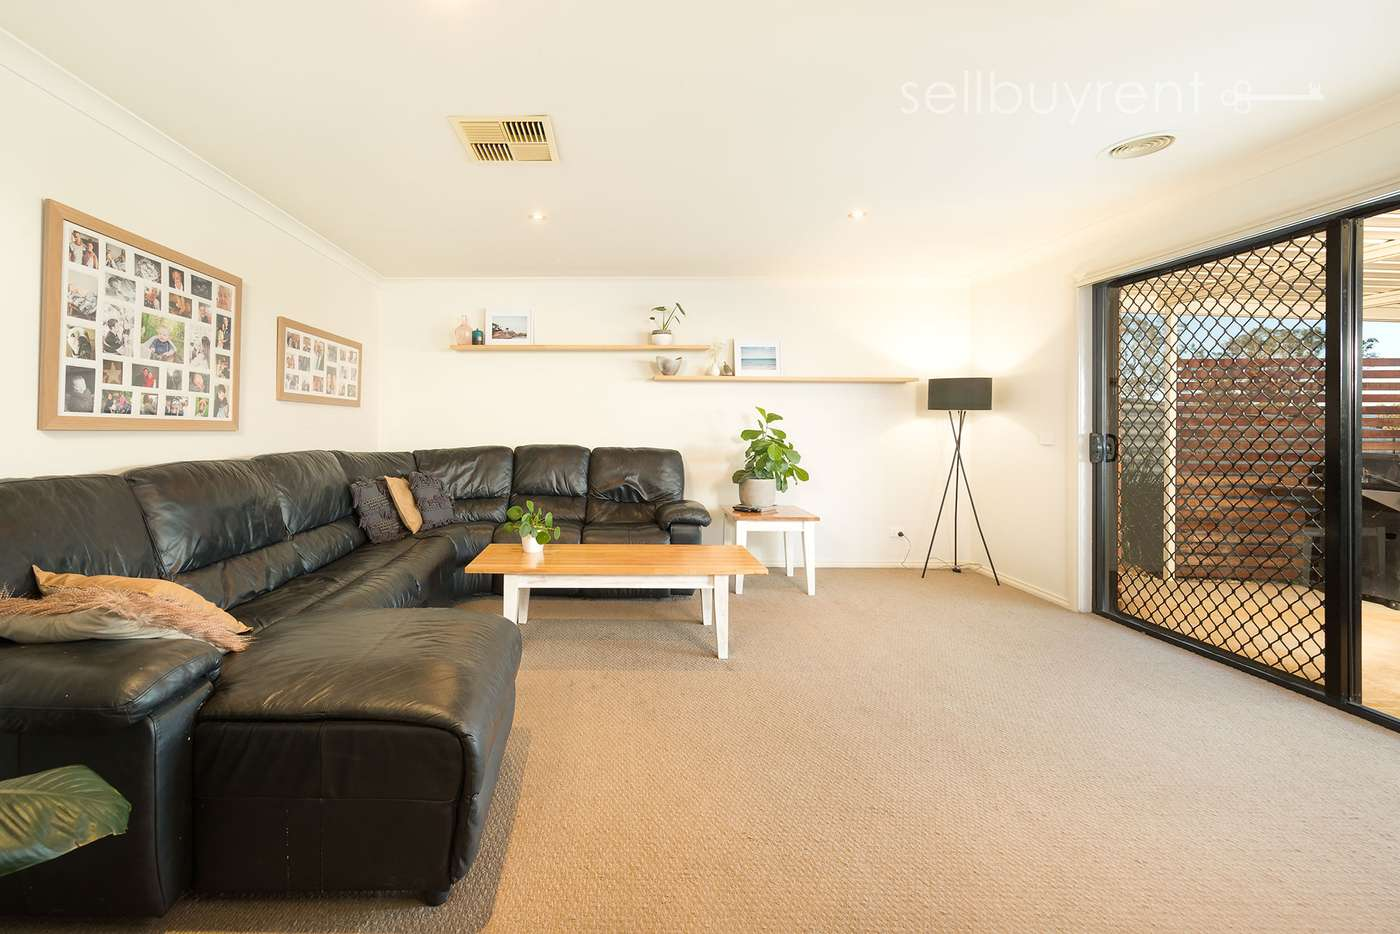 Seventh view of Homely house listing, 43 FIRESTONE WAY, Wodonga VIC 3690